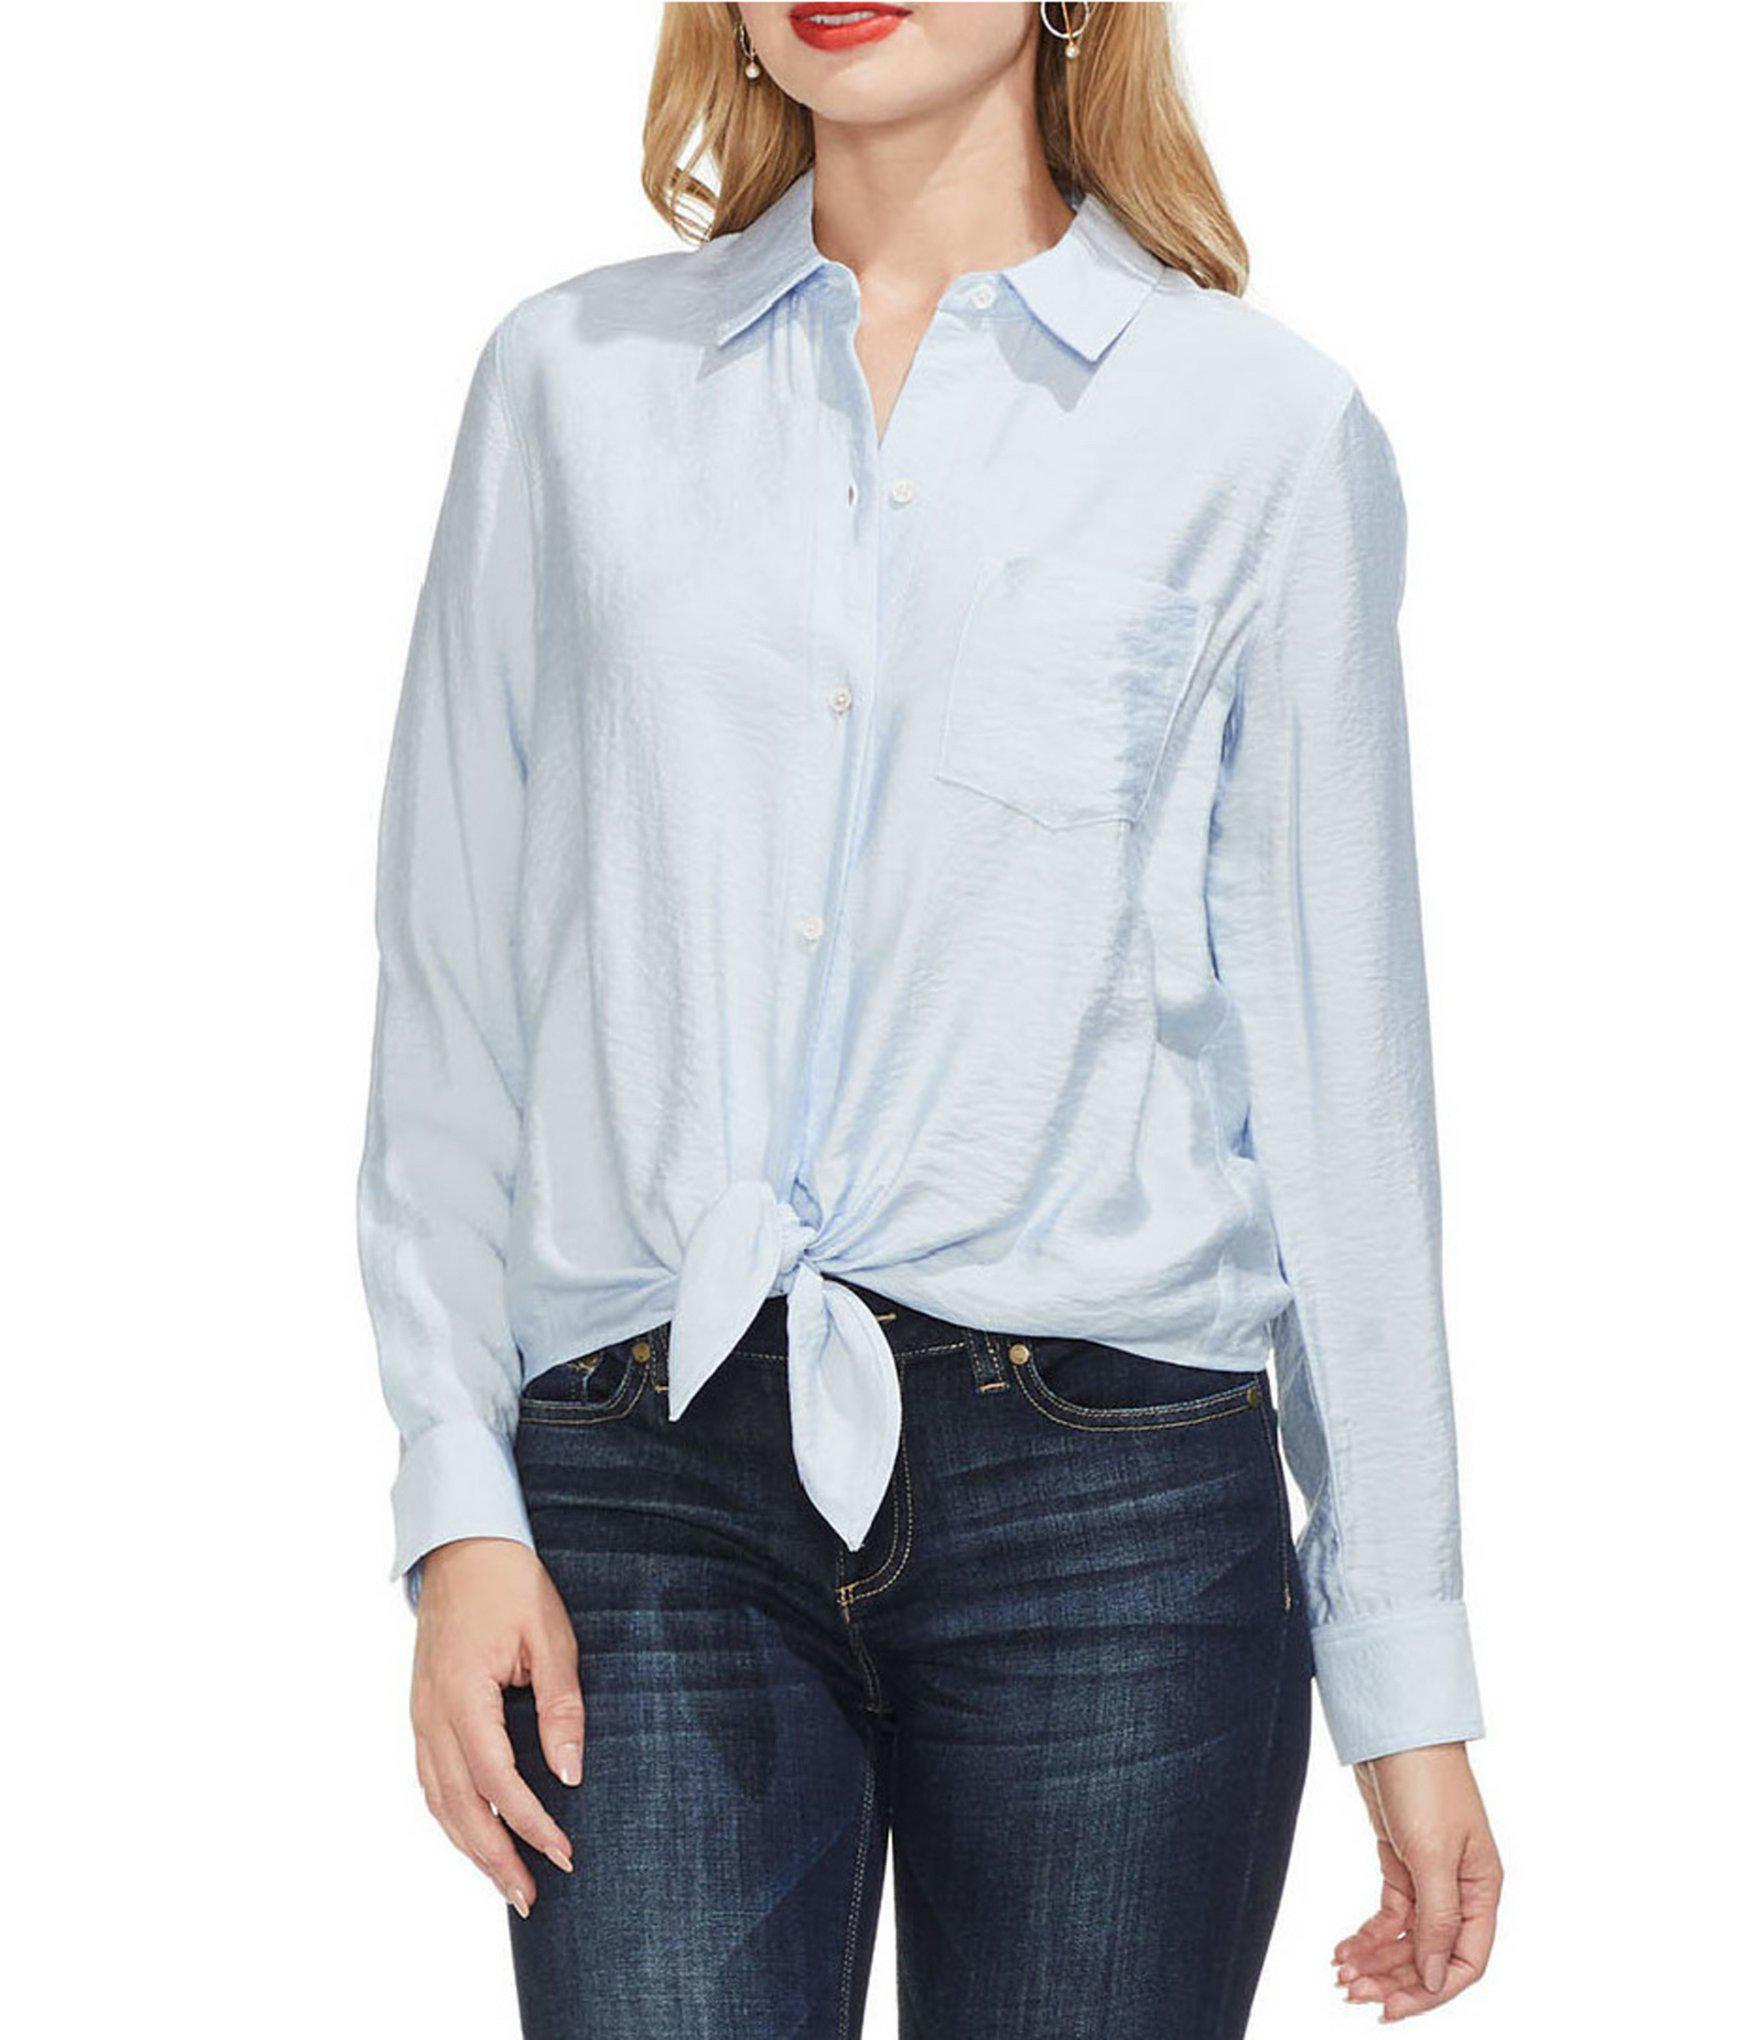 bf8544cb Lyst - Vince Camuto Flowy Button Down Woven Shirt in Blue - Save 40%